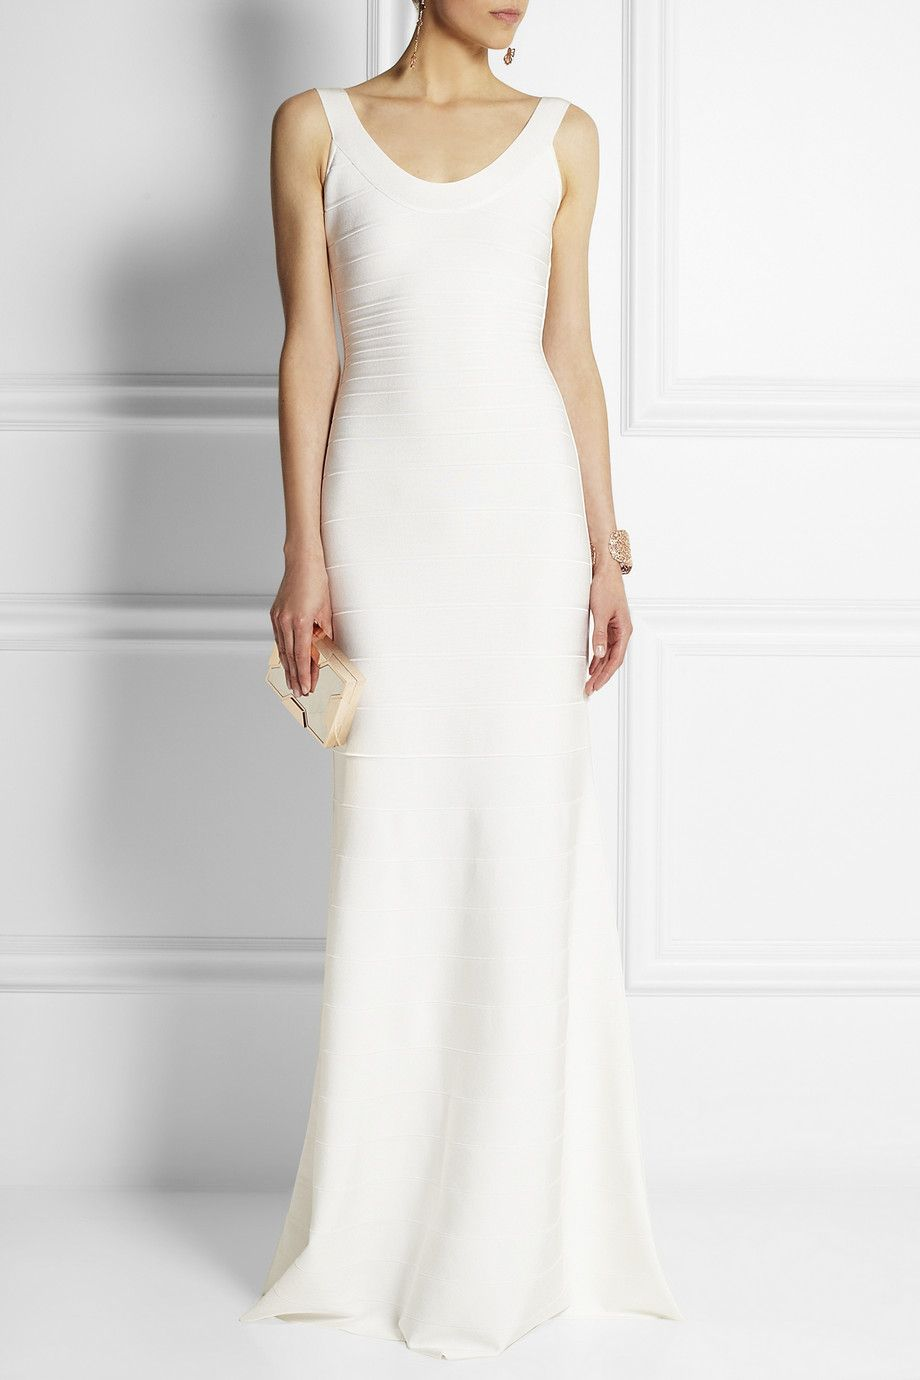 Hervé Léger   Ellen bandage gown (reception dress)   Say Yes To The ...